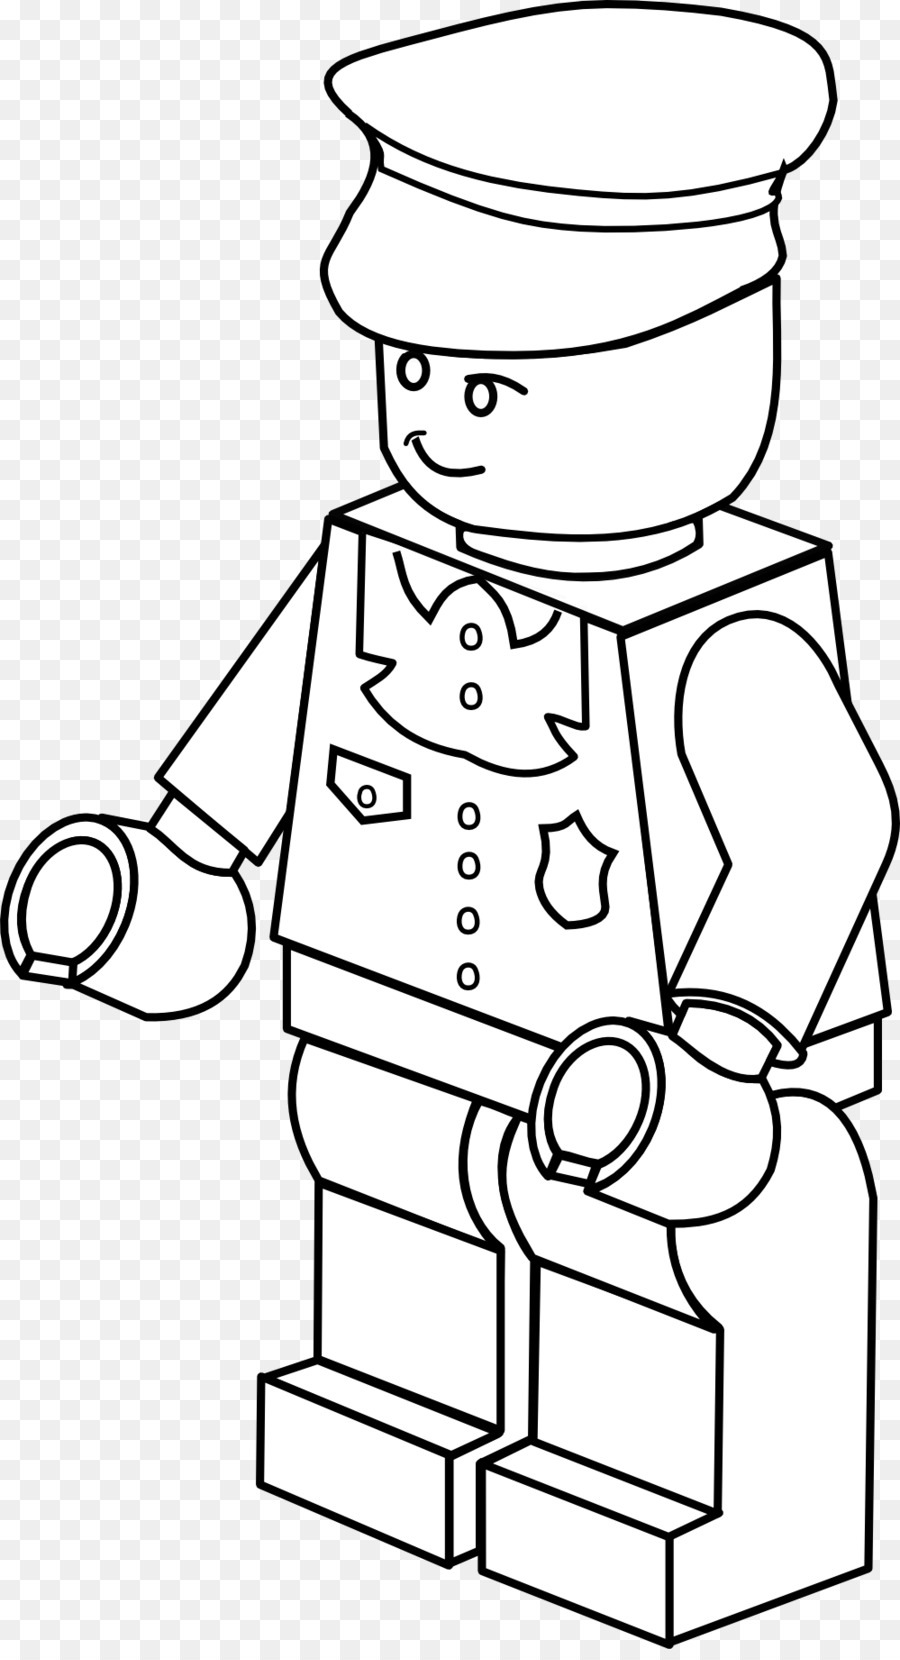 Download lego policeman coloring page clipart Police officer ...